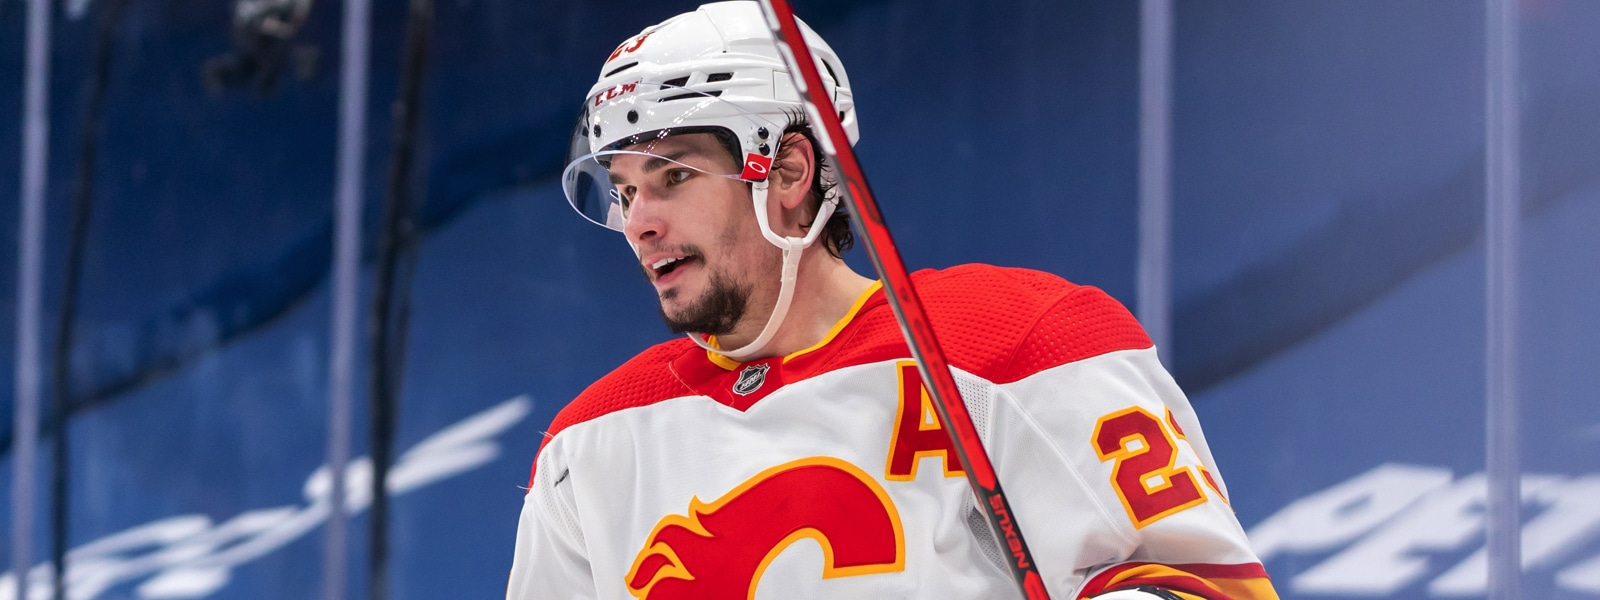 Flames Unfiltered – Episode 90 – Line Blender Leads to Doom and Gloom in Calgary